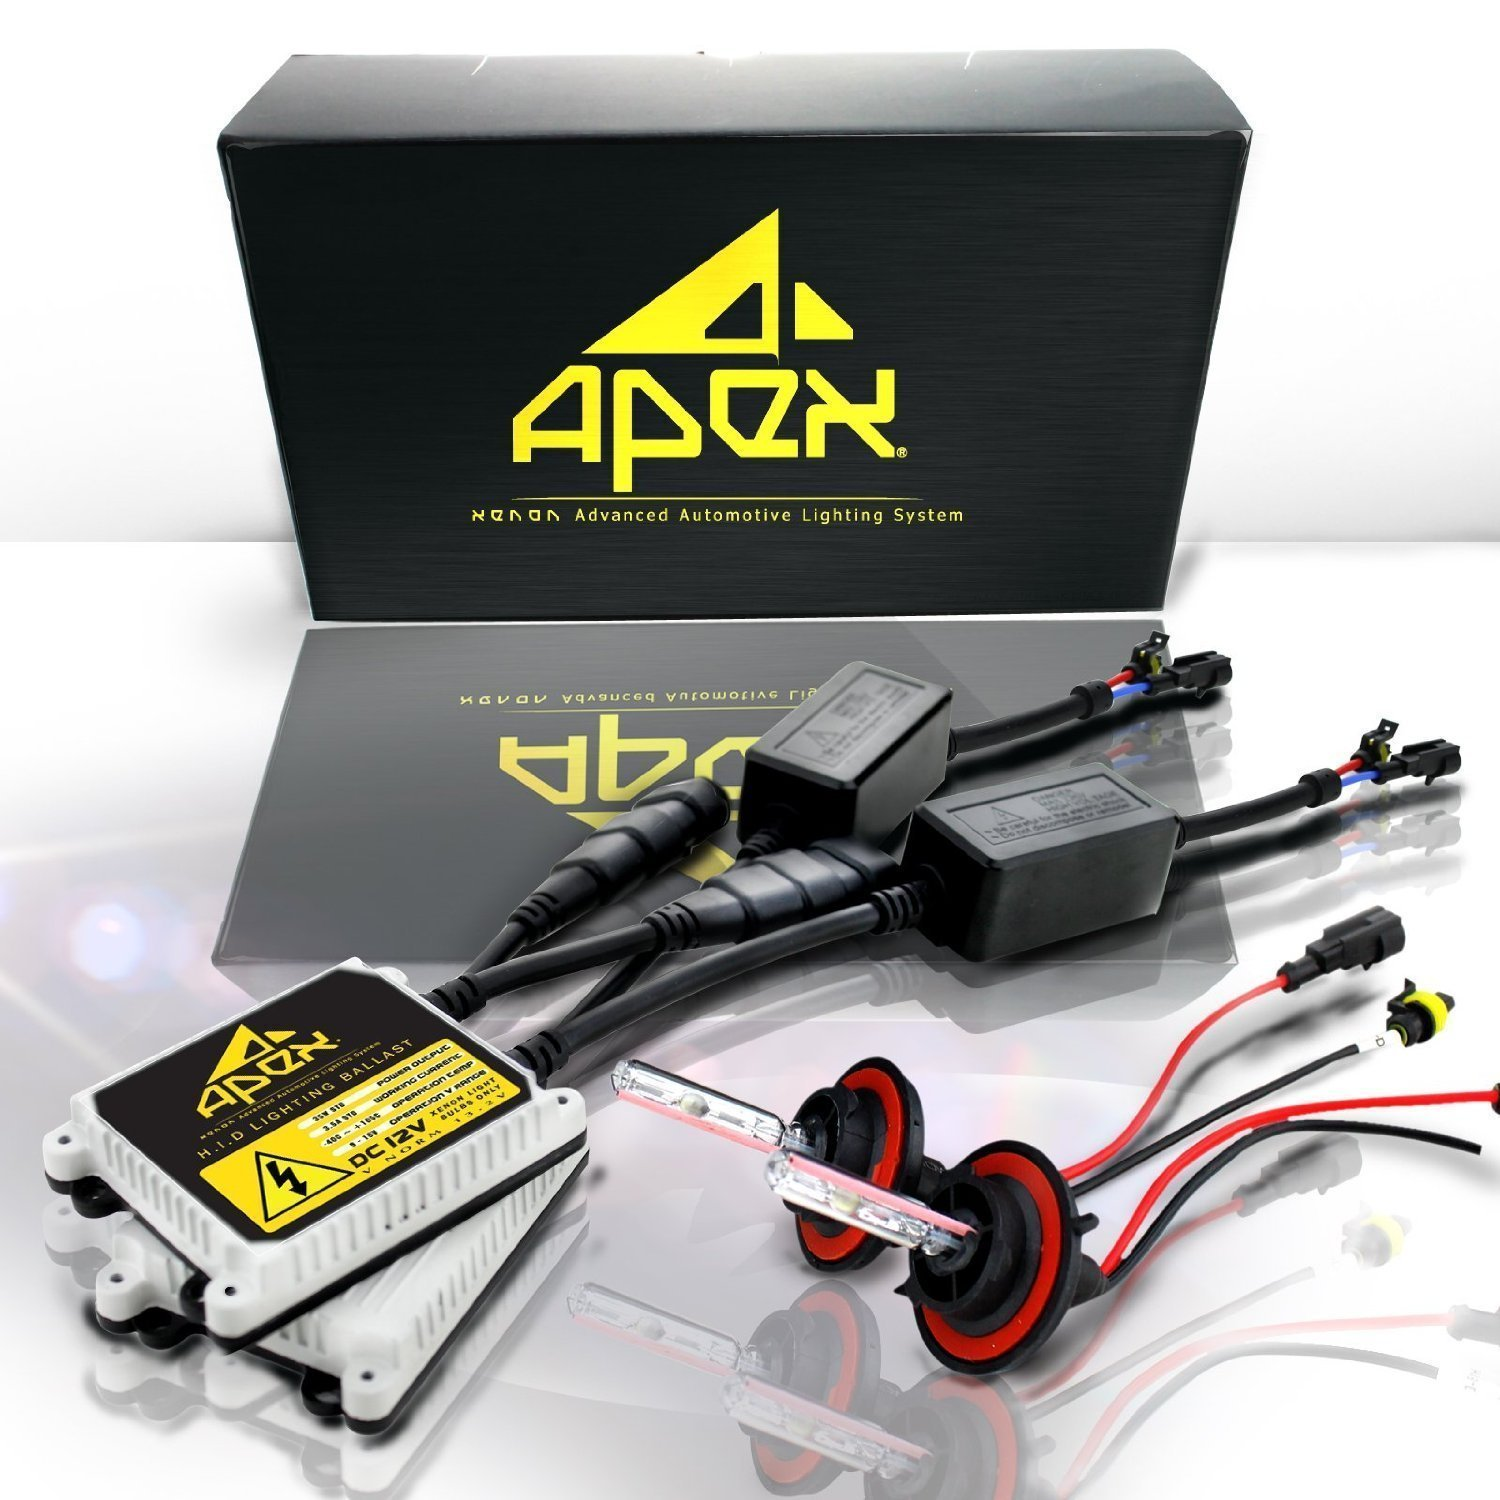 Apex 9006 Hb4 Green Xenon Hid Conversion Kit With Advance Ballast Wiring Diagram Slim Ignitor Digital Ballasts Hids Lights Kits 2 Year Warranty Automotive